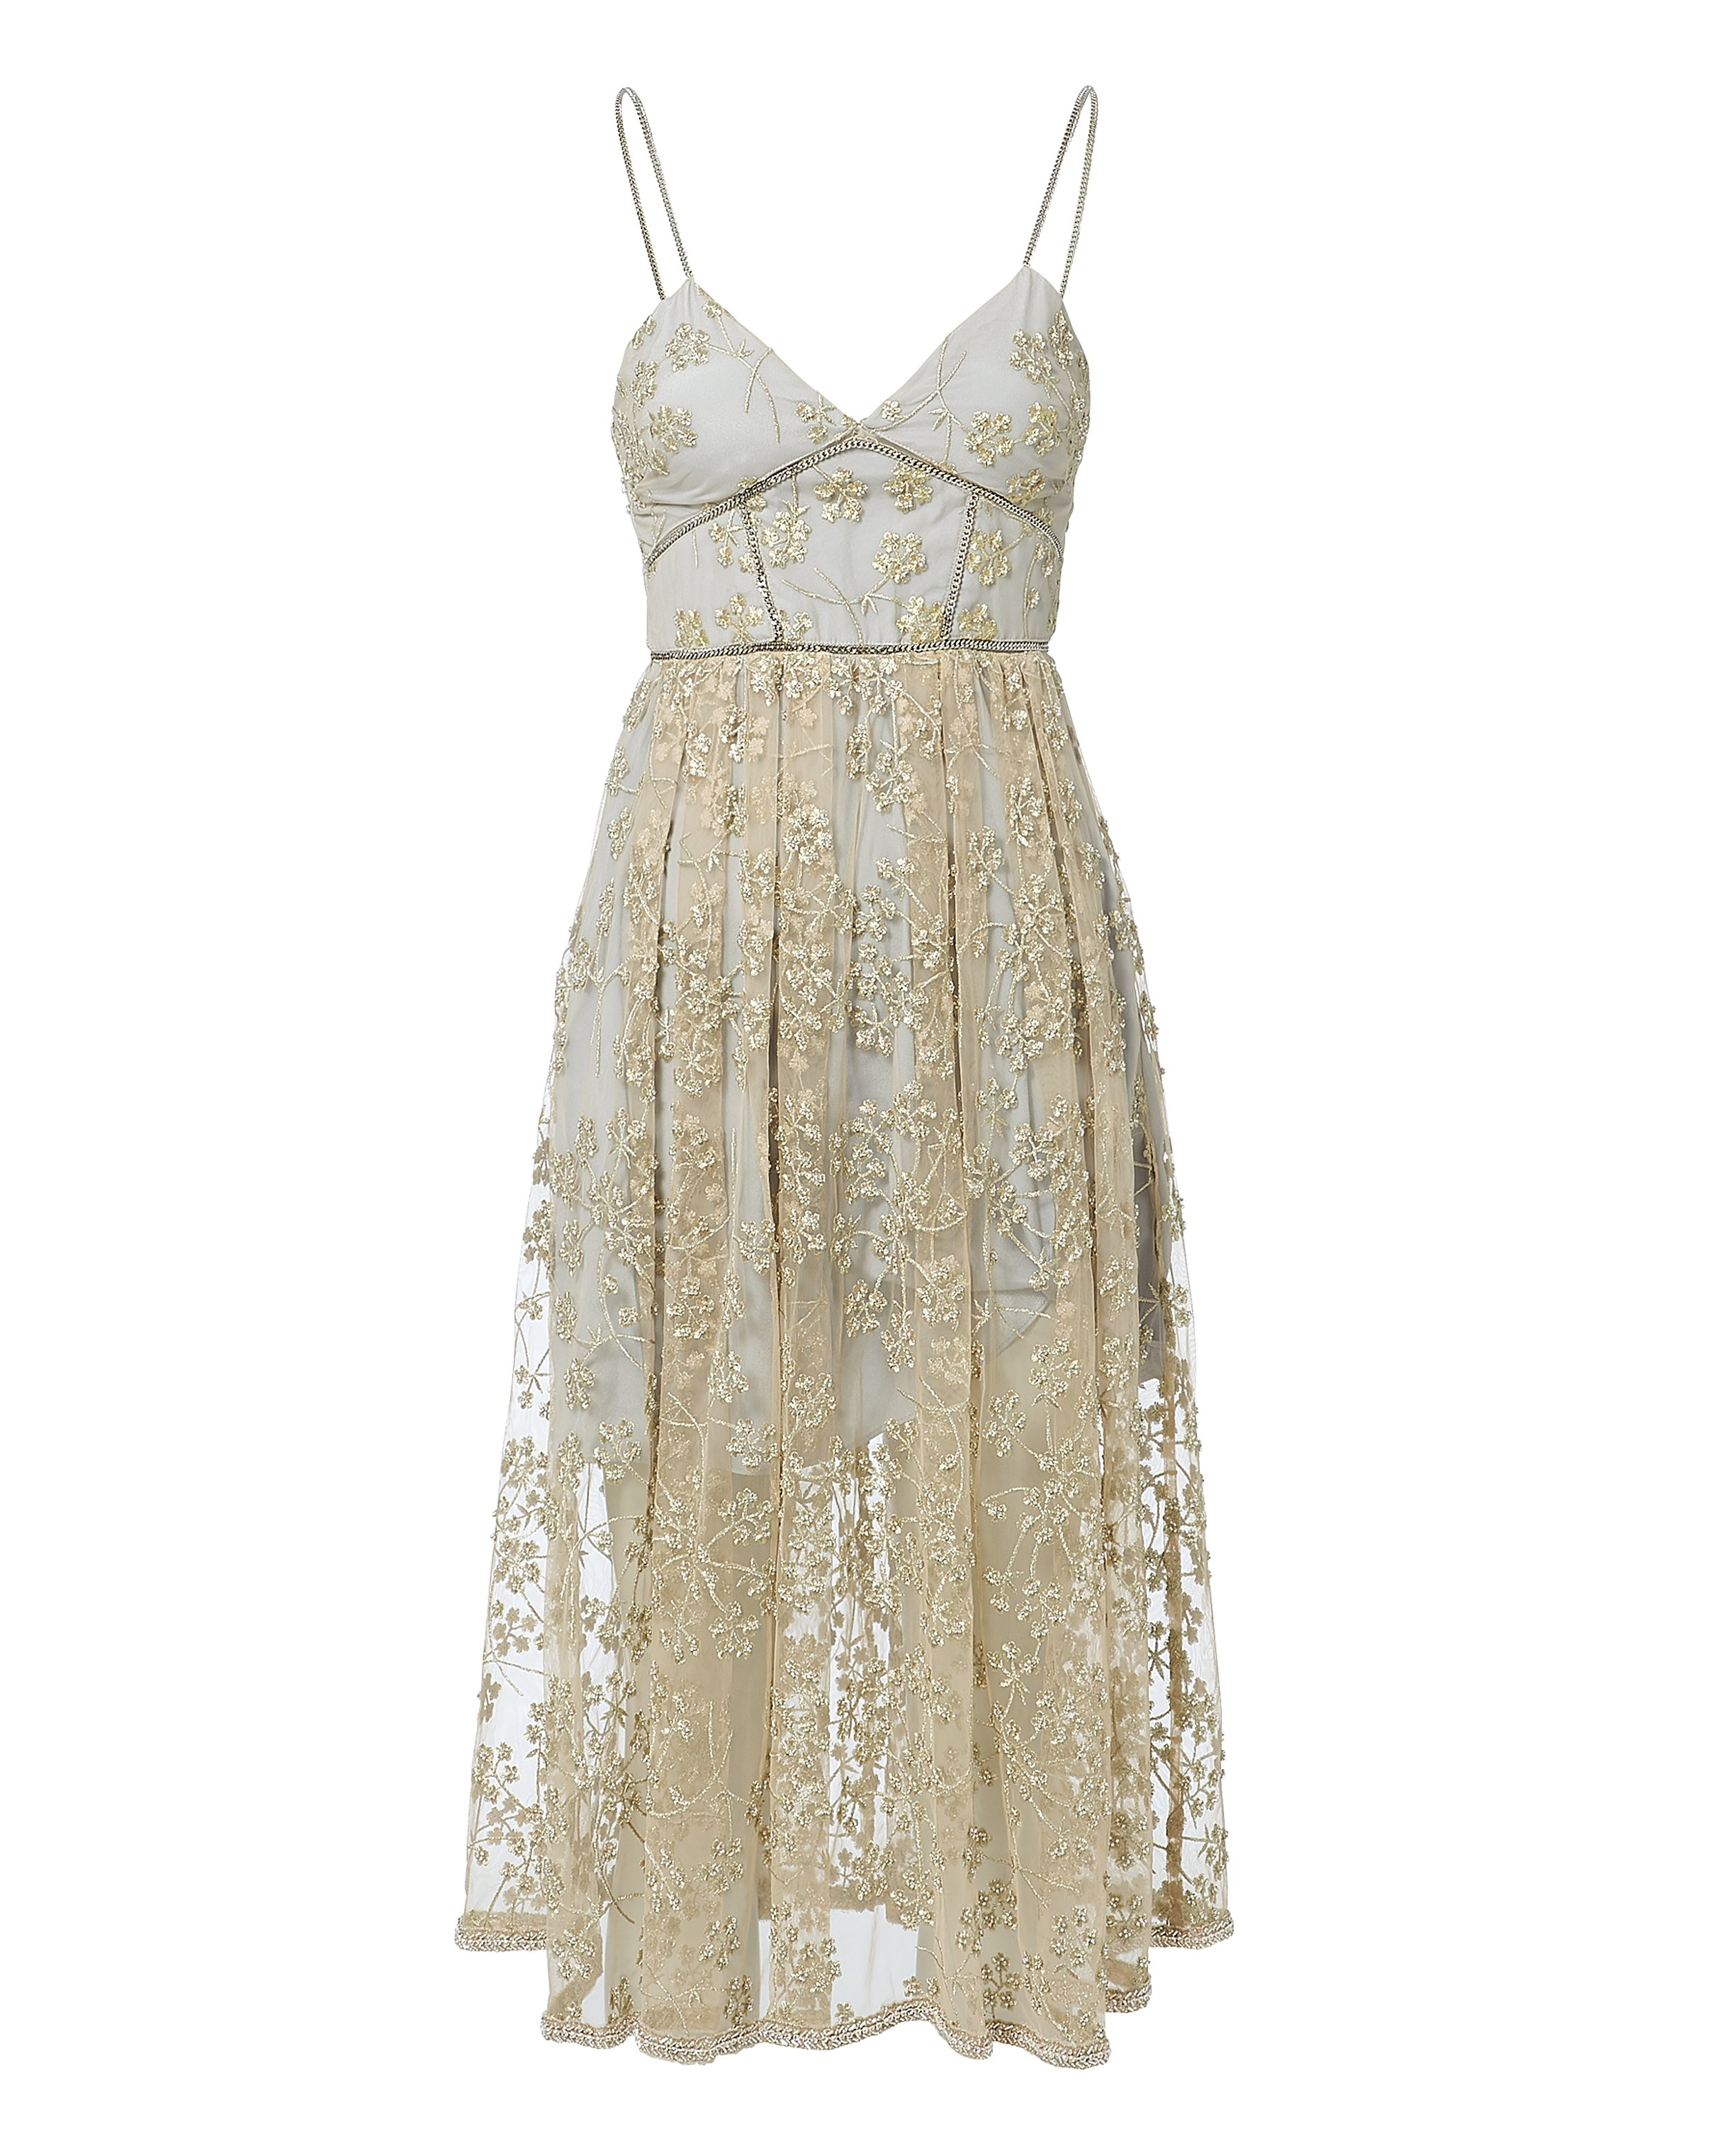 Floral Embroidery Mesh Dress by Self Portrait